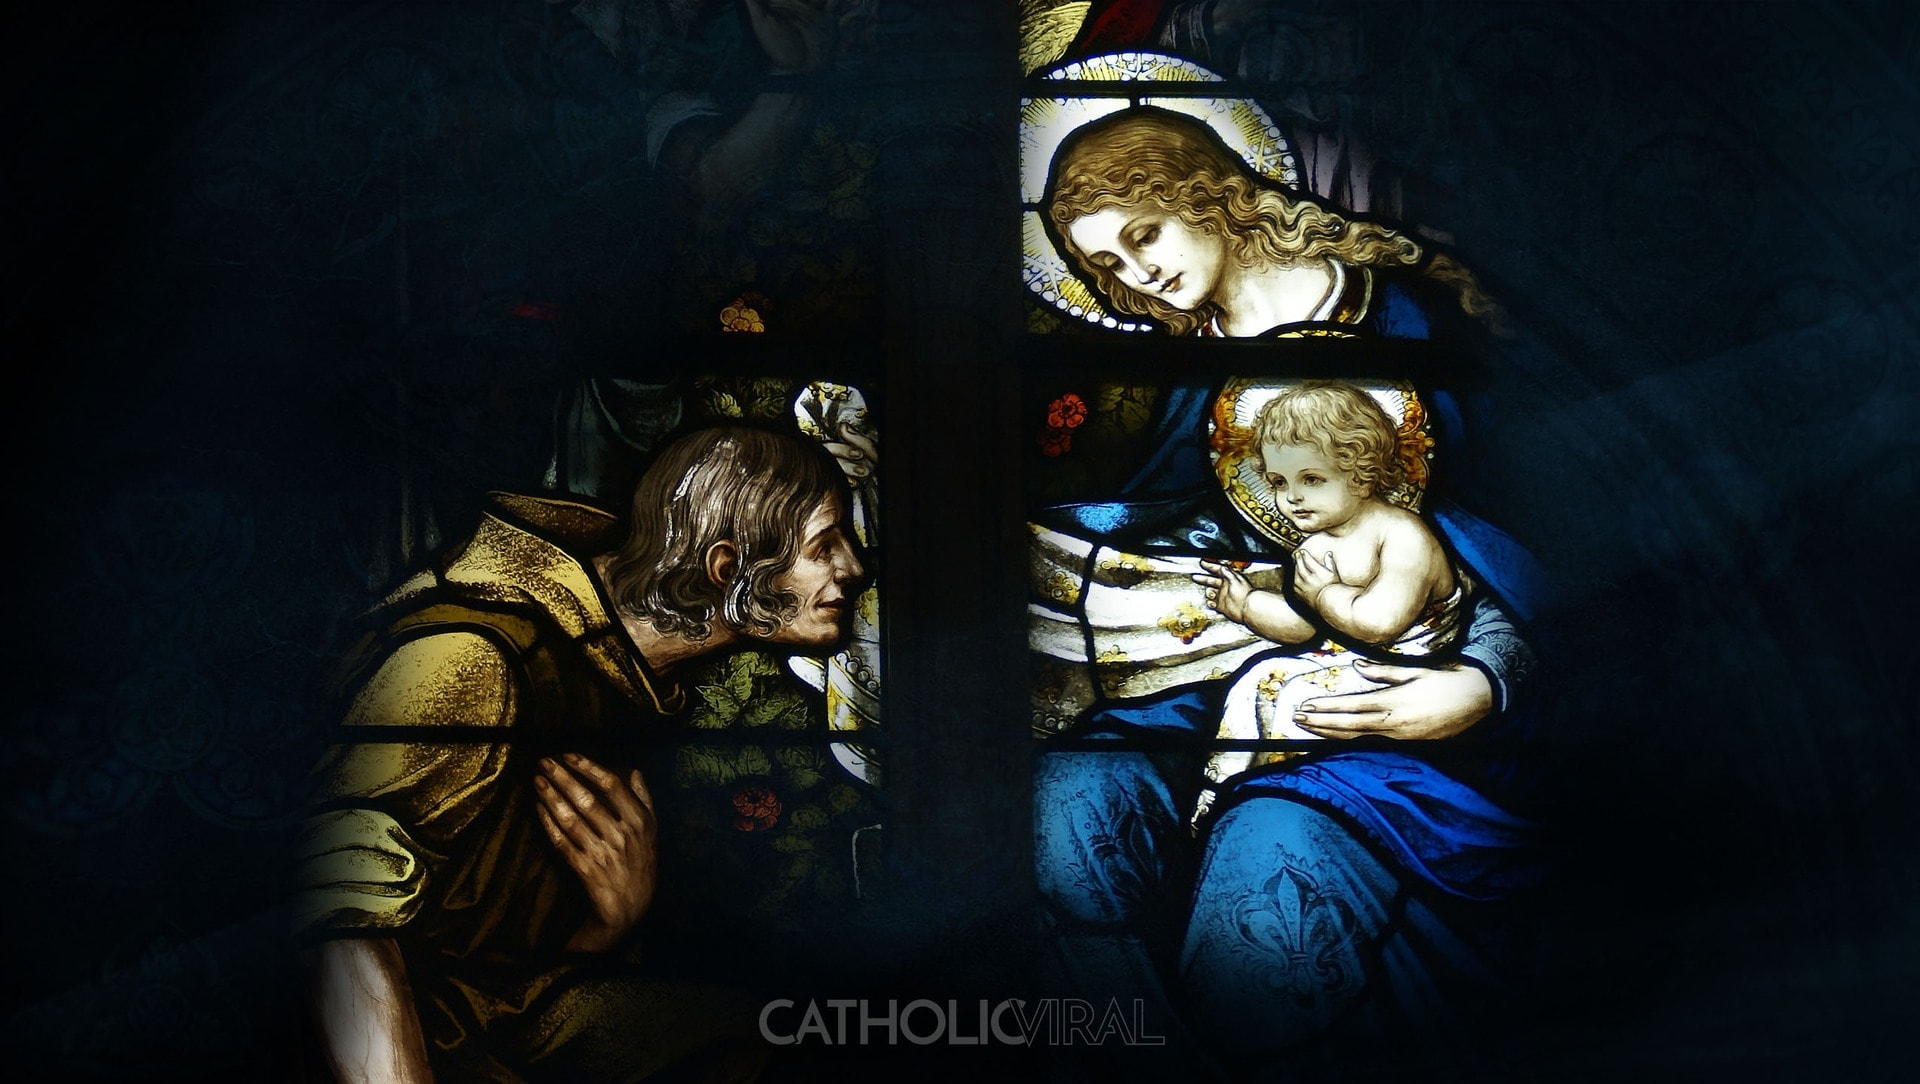 Wallpapers Of Jesus Christ With Quotes 17 Stunning Stained Glass Windows Of The Nativity Hd